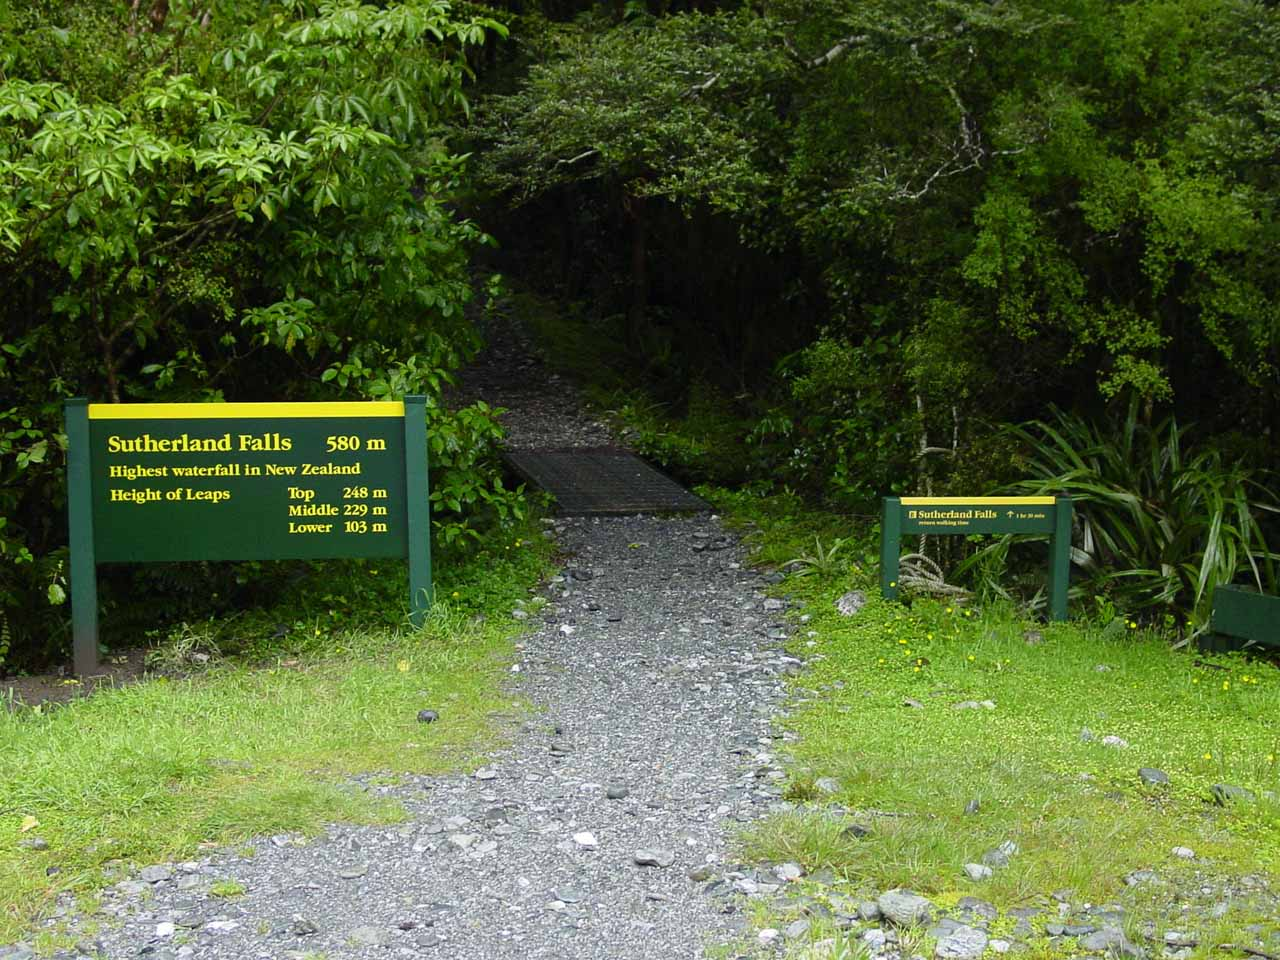 Signage at the start of the Sutherland Falls track from the Quintin Lodge